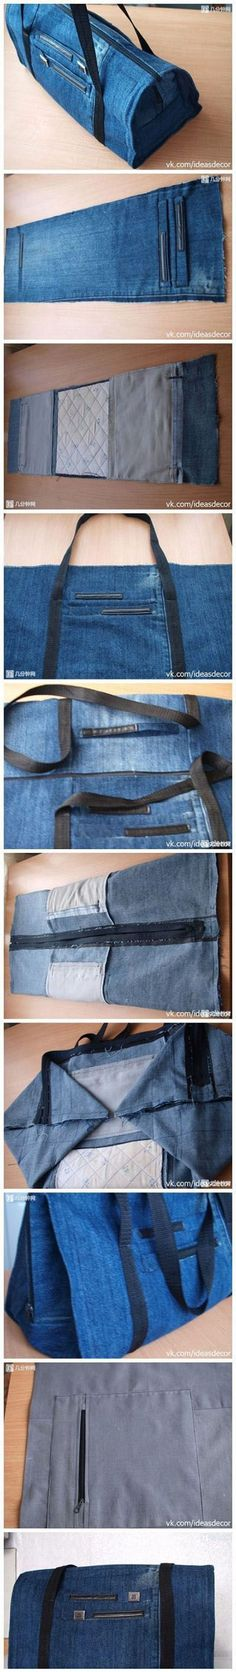 Diy Jean Bag | DIY & Crafts Hoping I can figure this out from the pictures... or have someone else who sews more than I do make it for me! =D